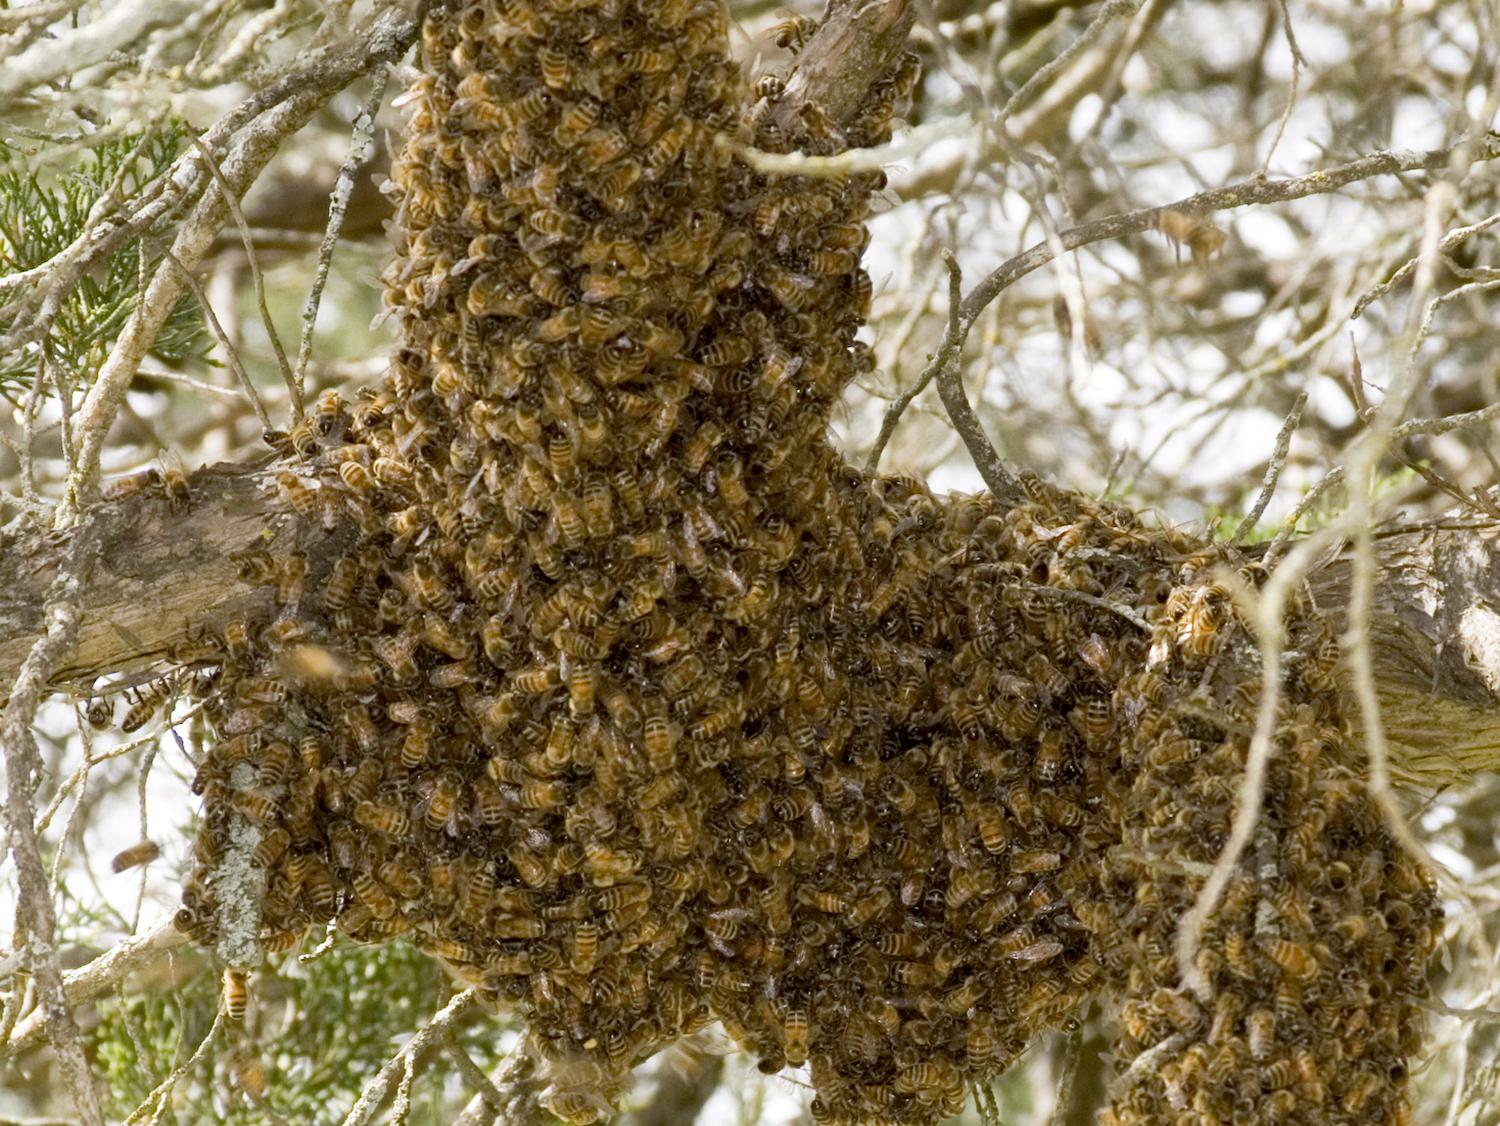 As bee swarms land on branches and other objects this spring, do not disturb them. The honeybees are seeking a new home and will usually move on within a few days. (MSU Extension Service file photo)